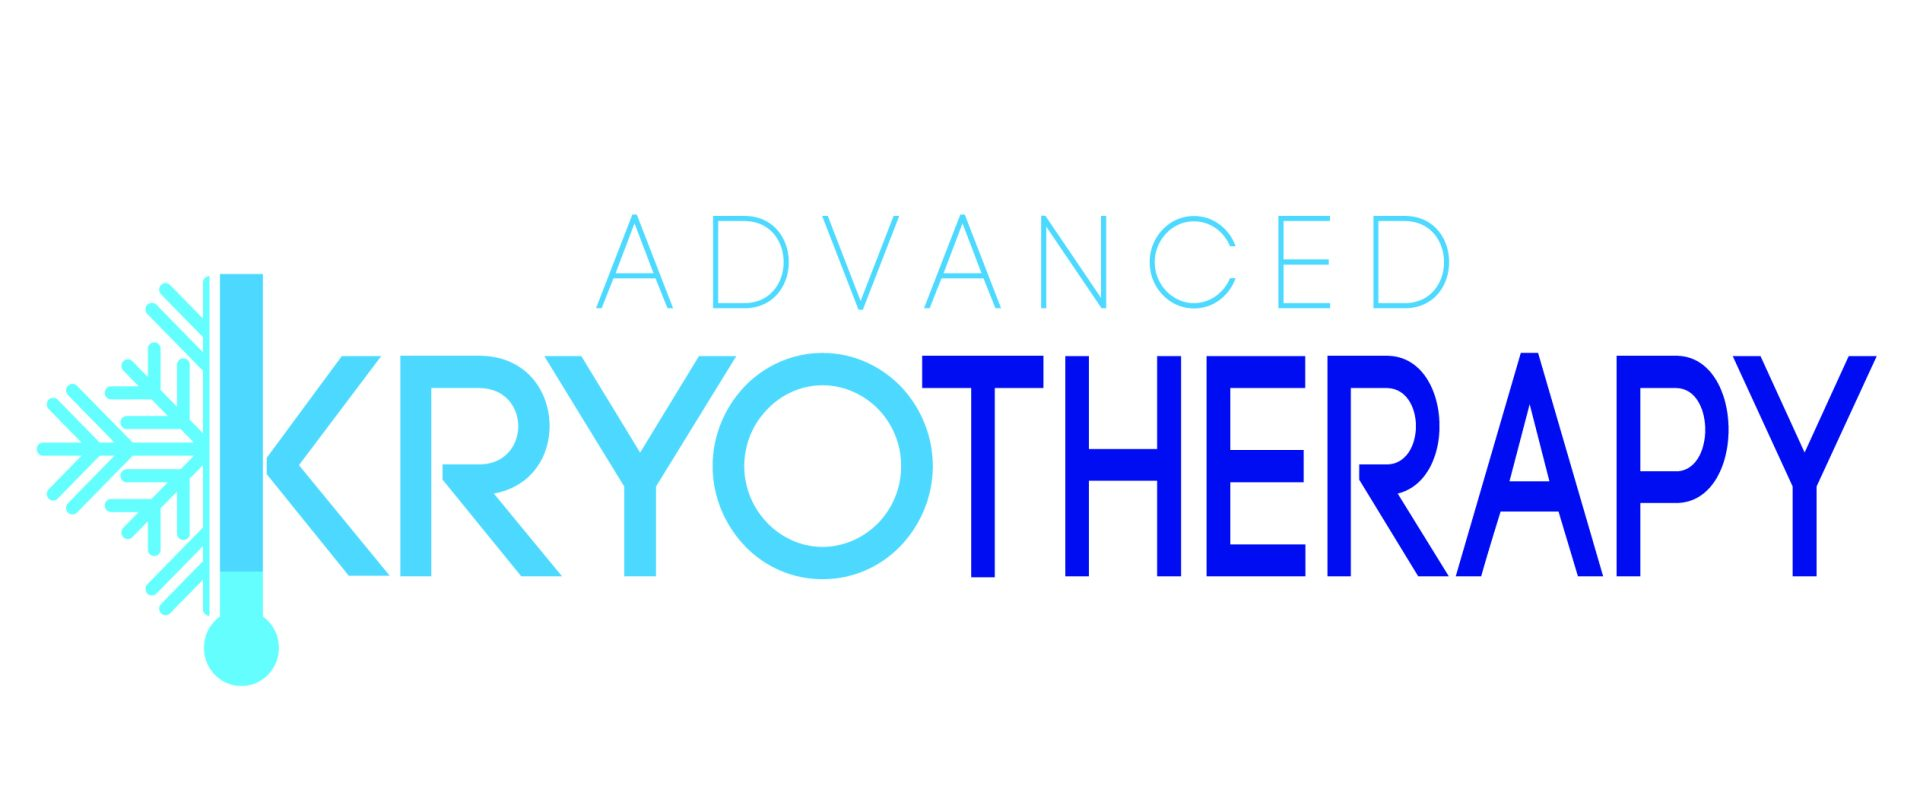 advanced kryotherapy logo